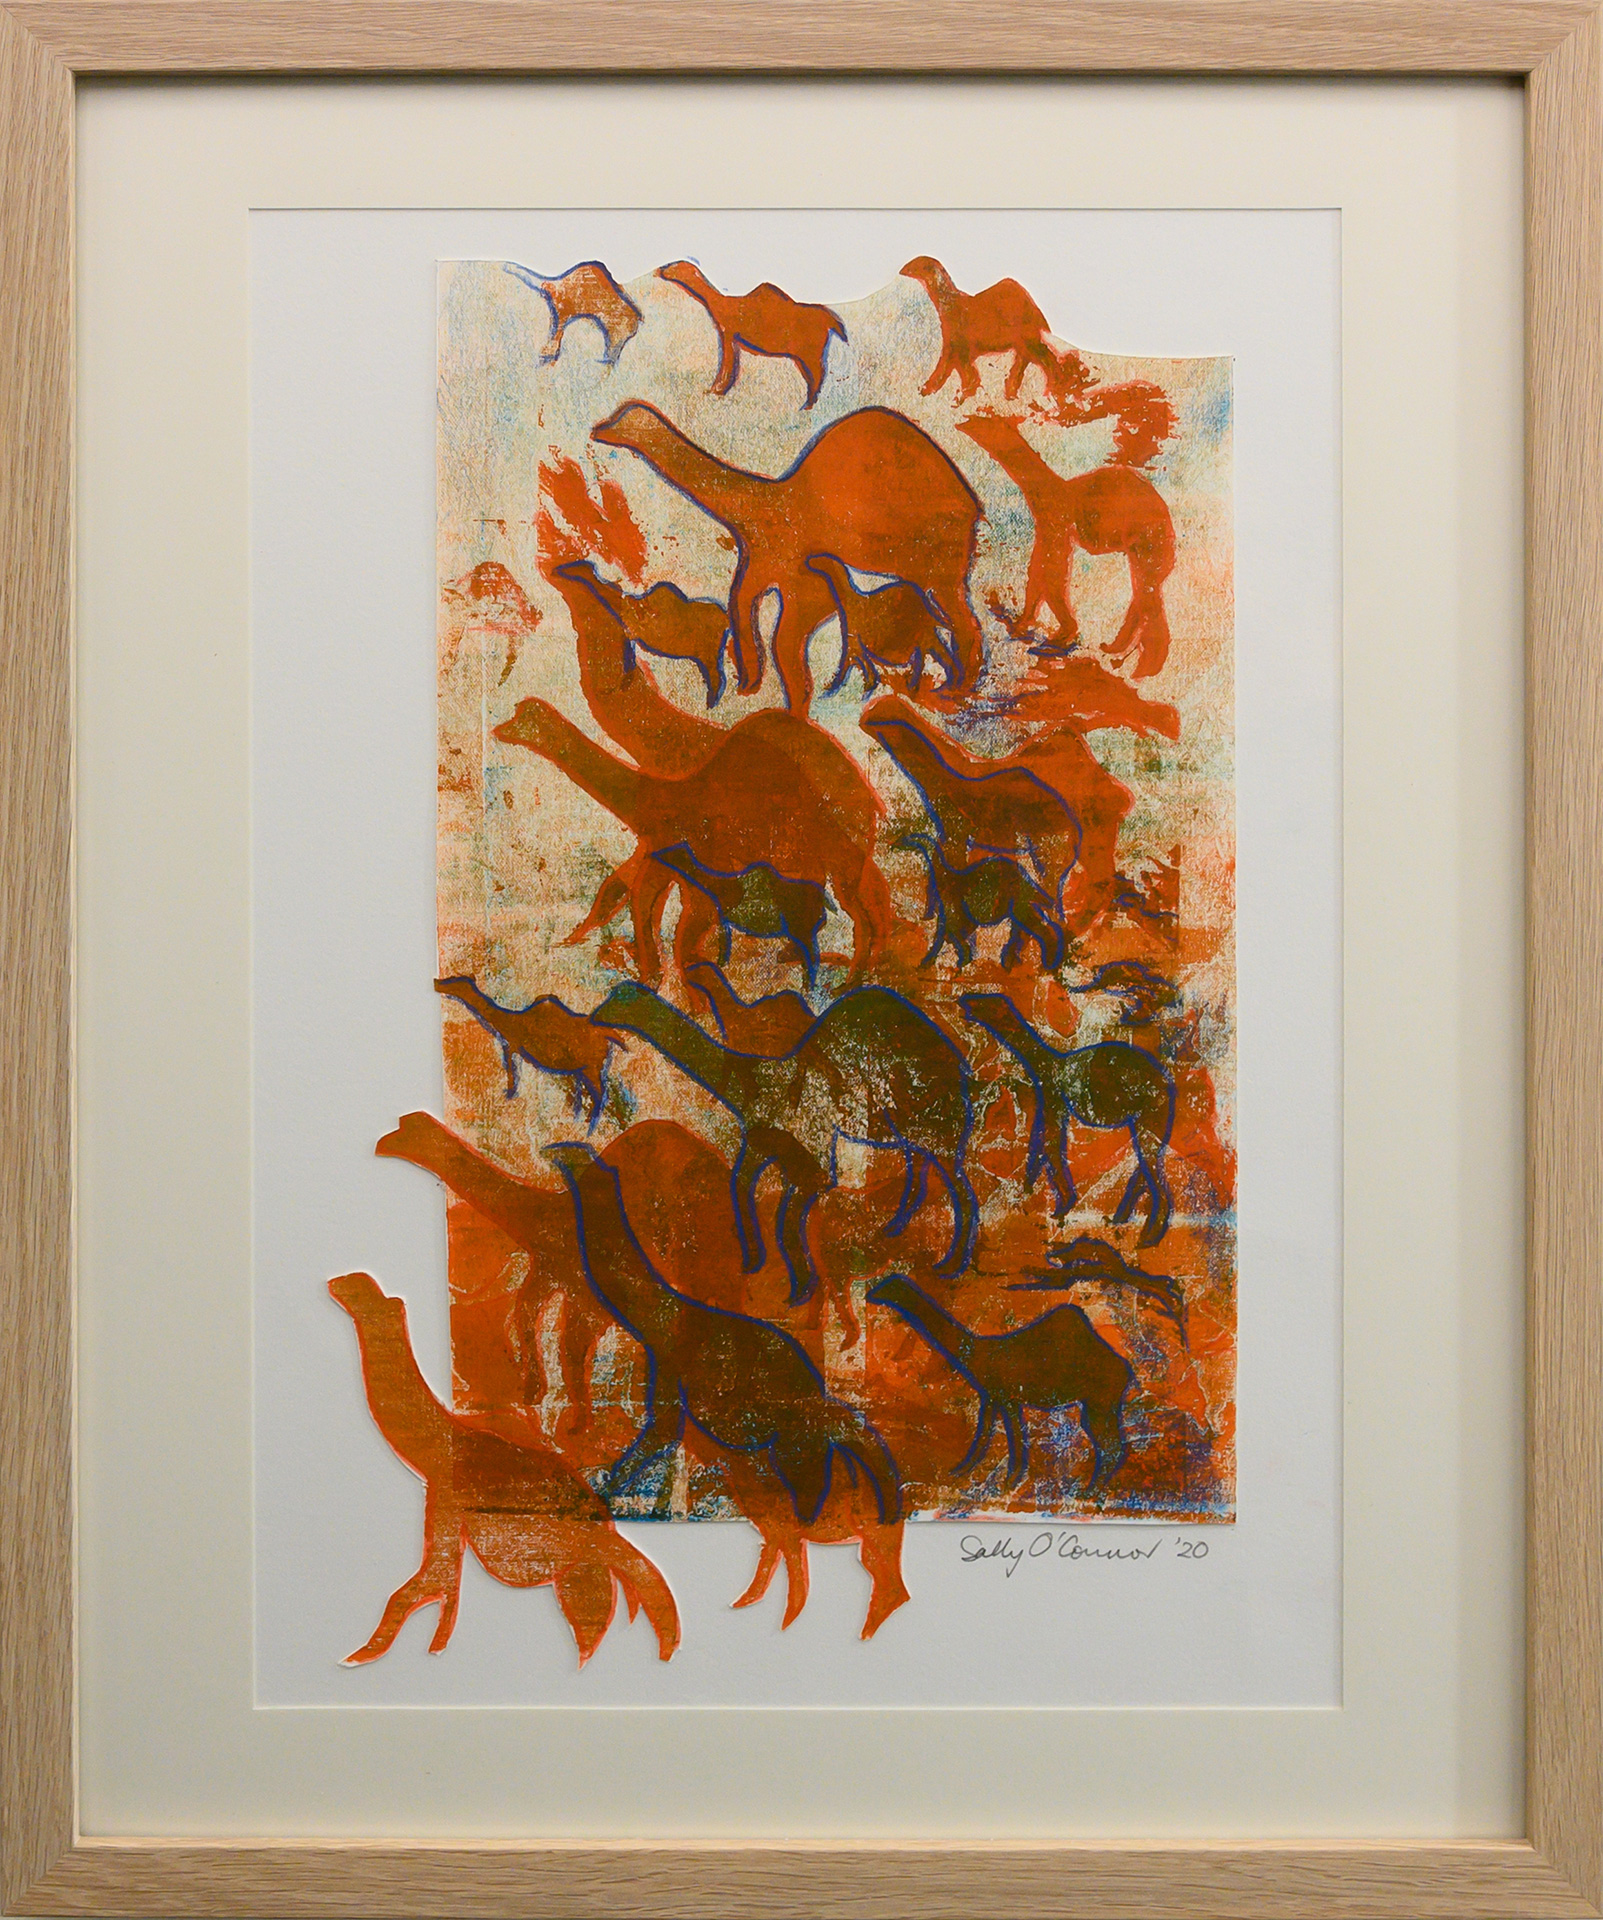 Framed artwork by Sally OConnor of layers of simplistic camels in ochre colours